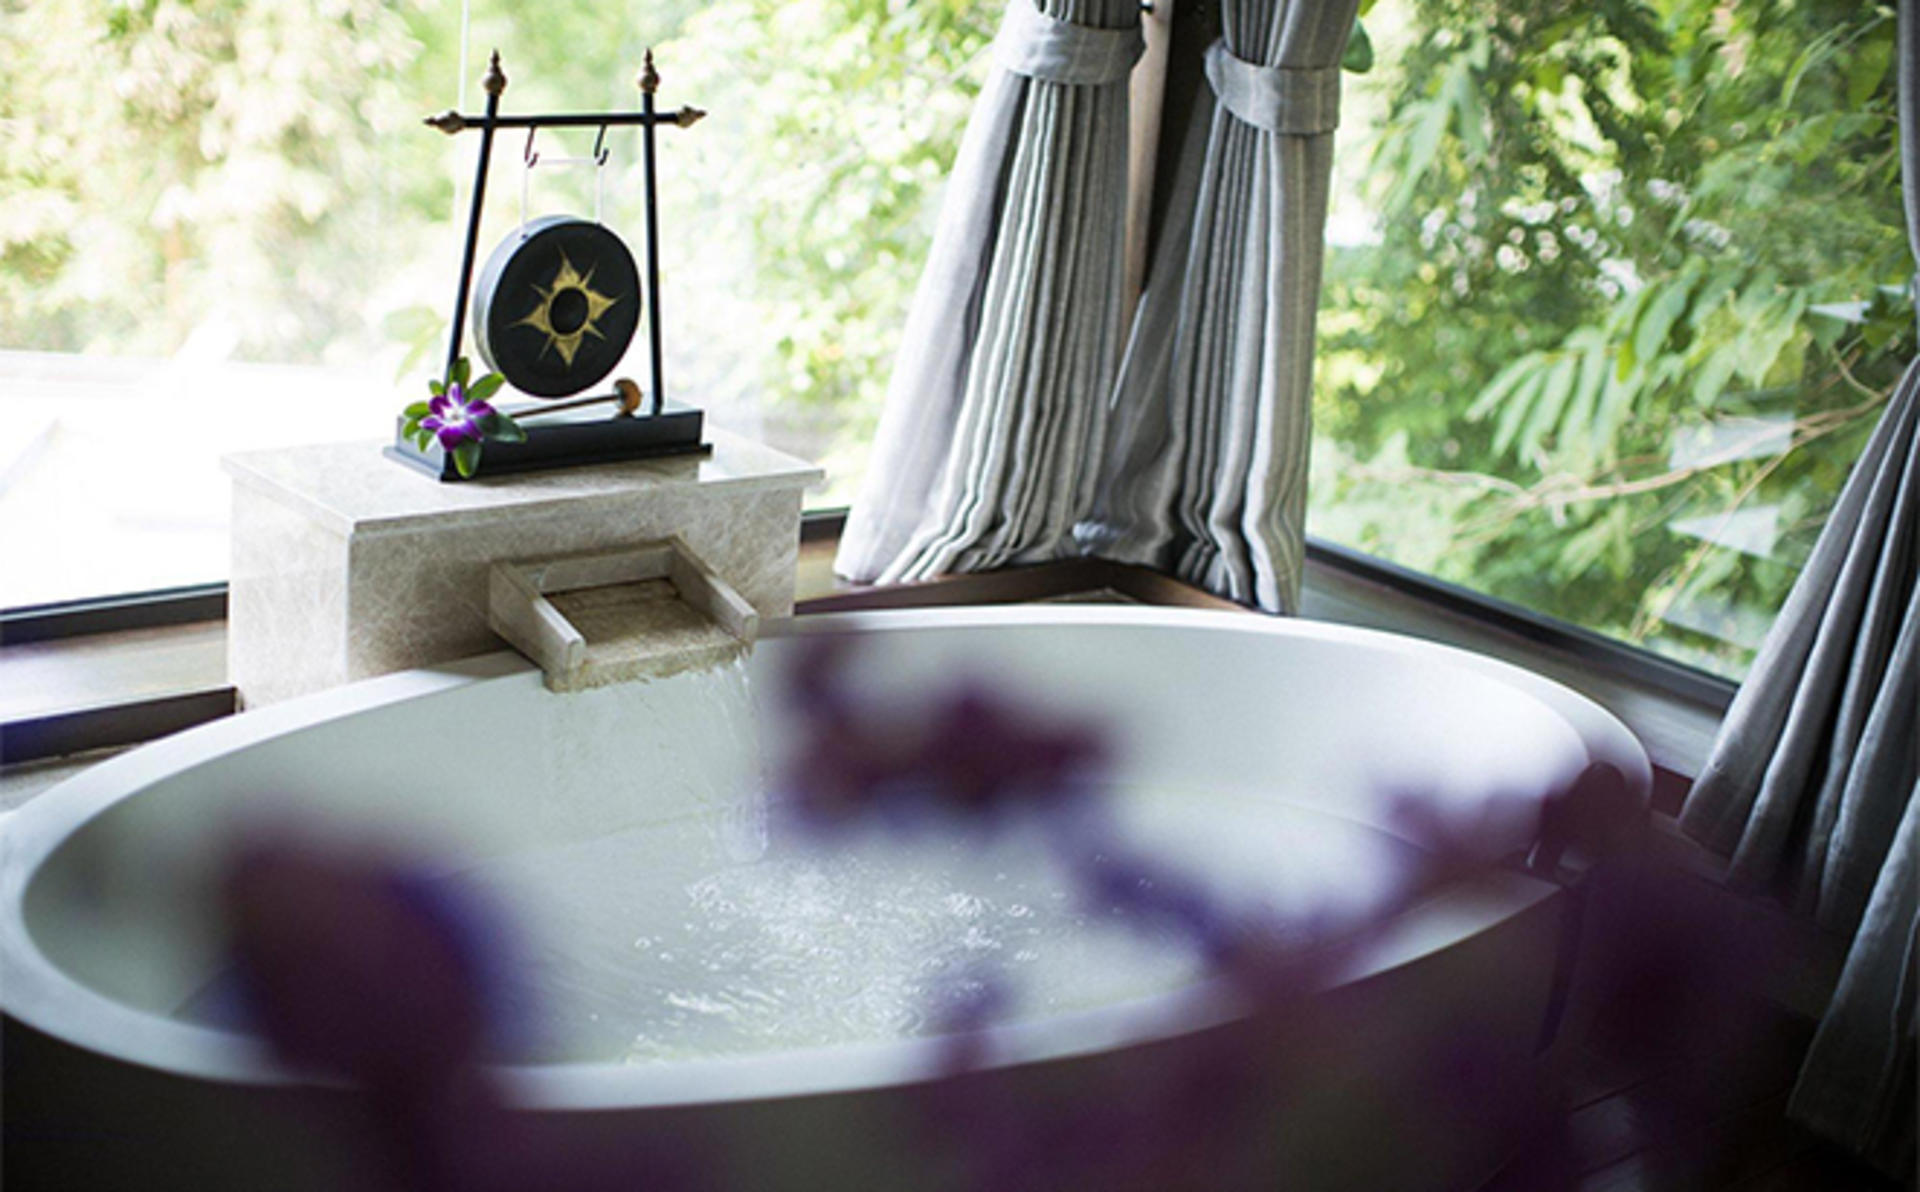 Anantara_Layan_Luxury-Bath-Ritual